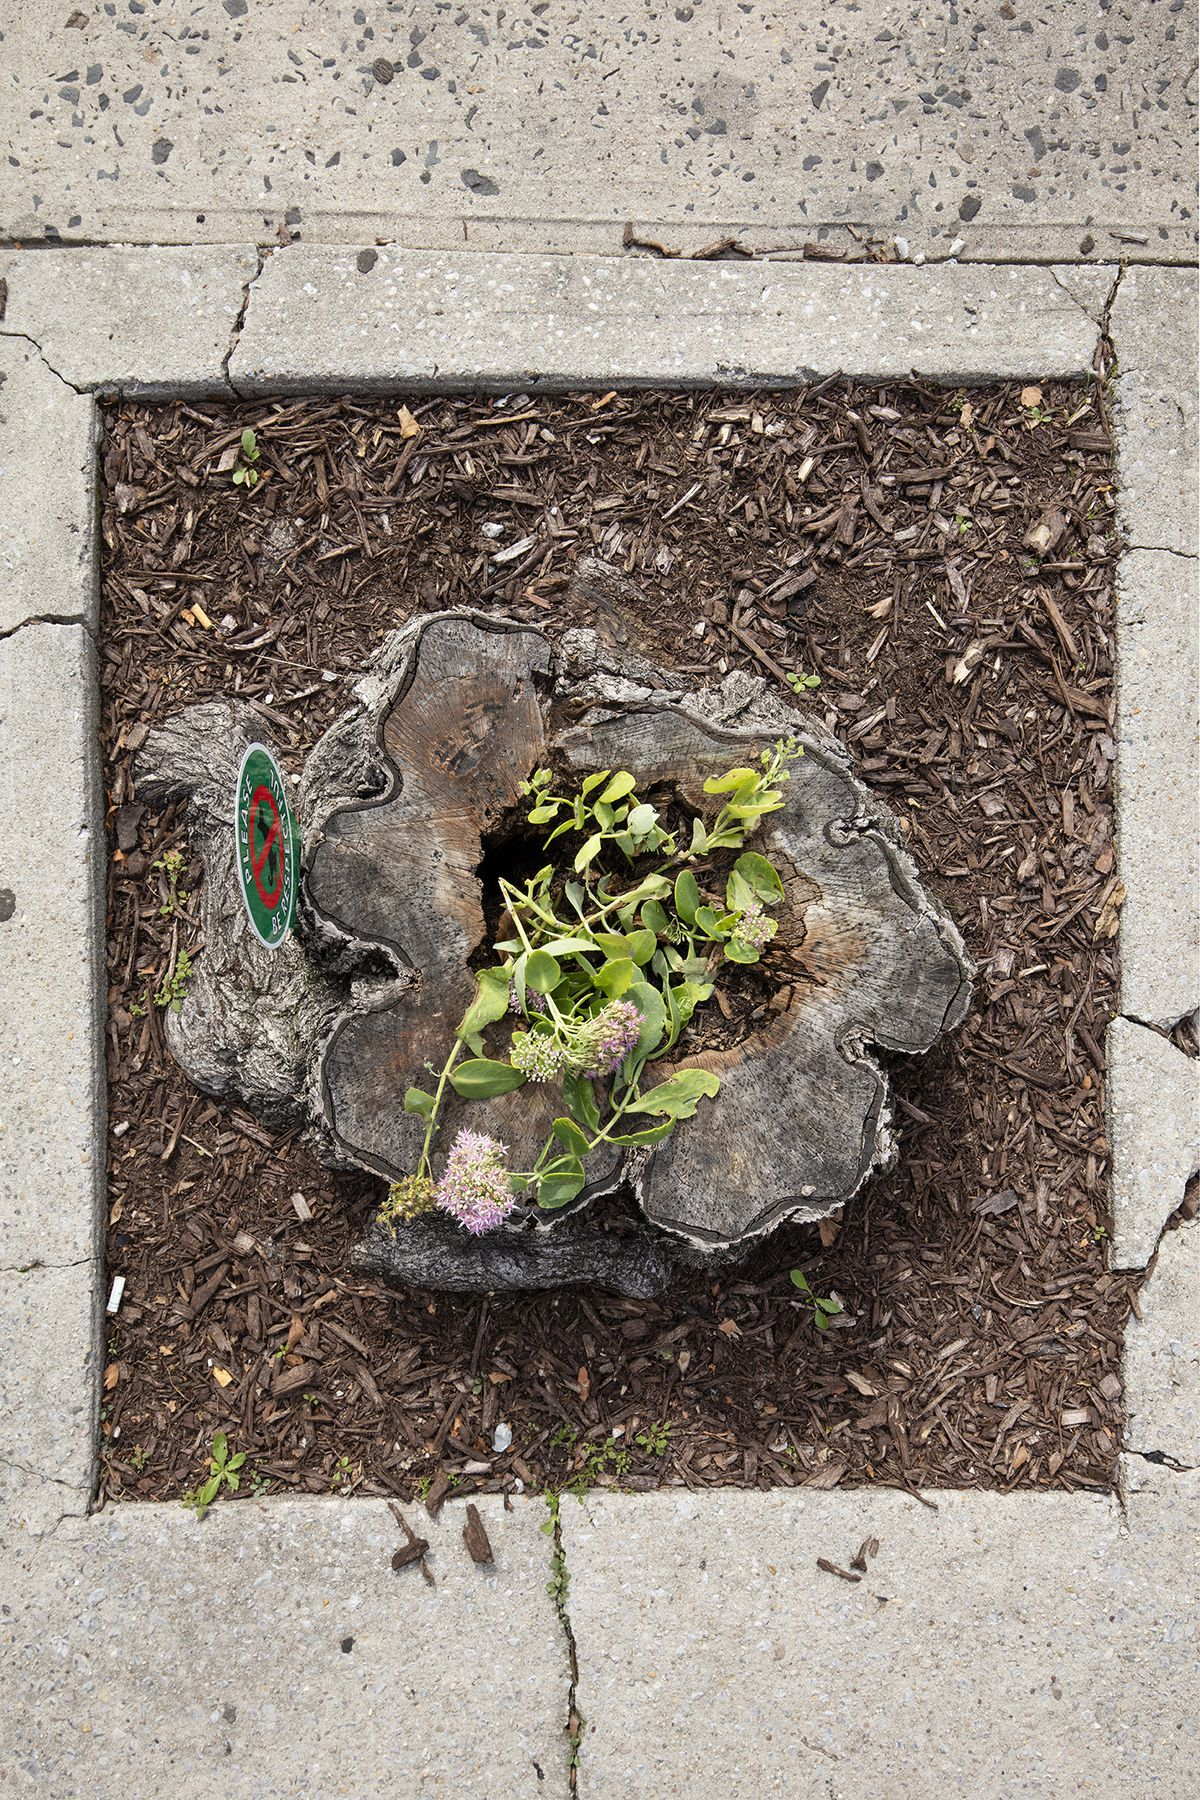 A tree stump with flowers planted in it.